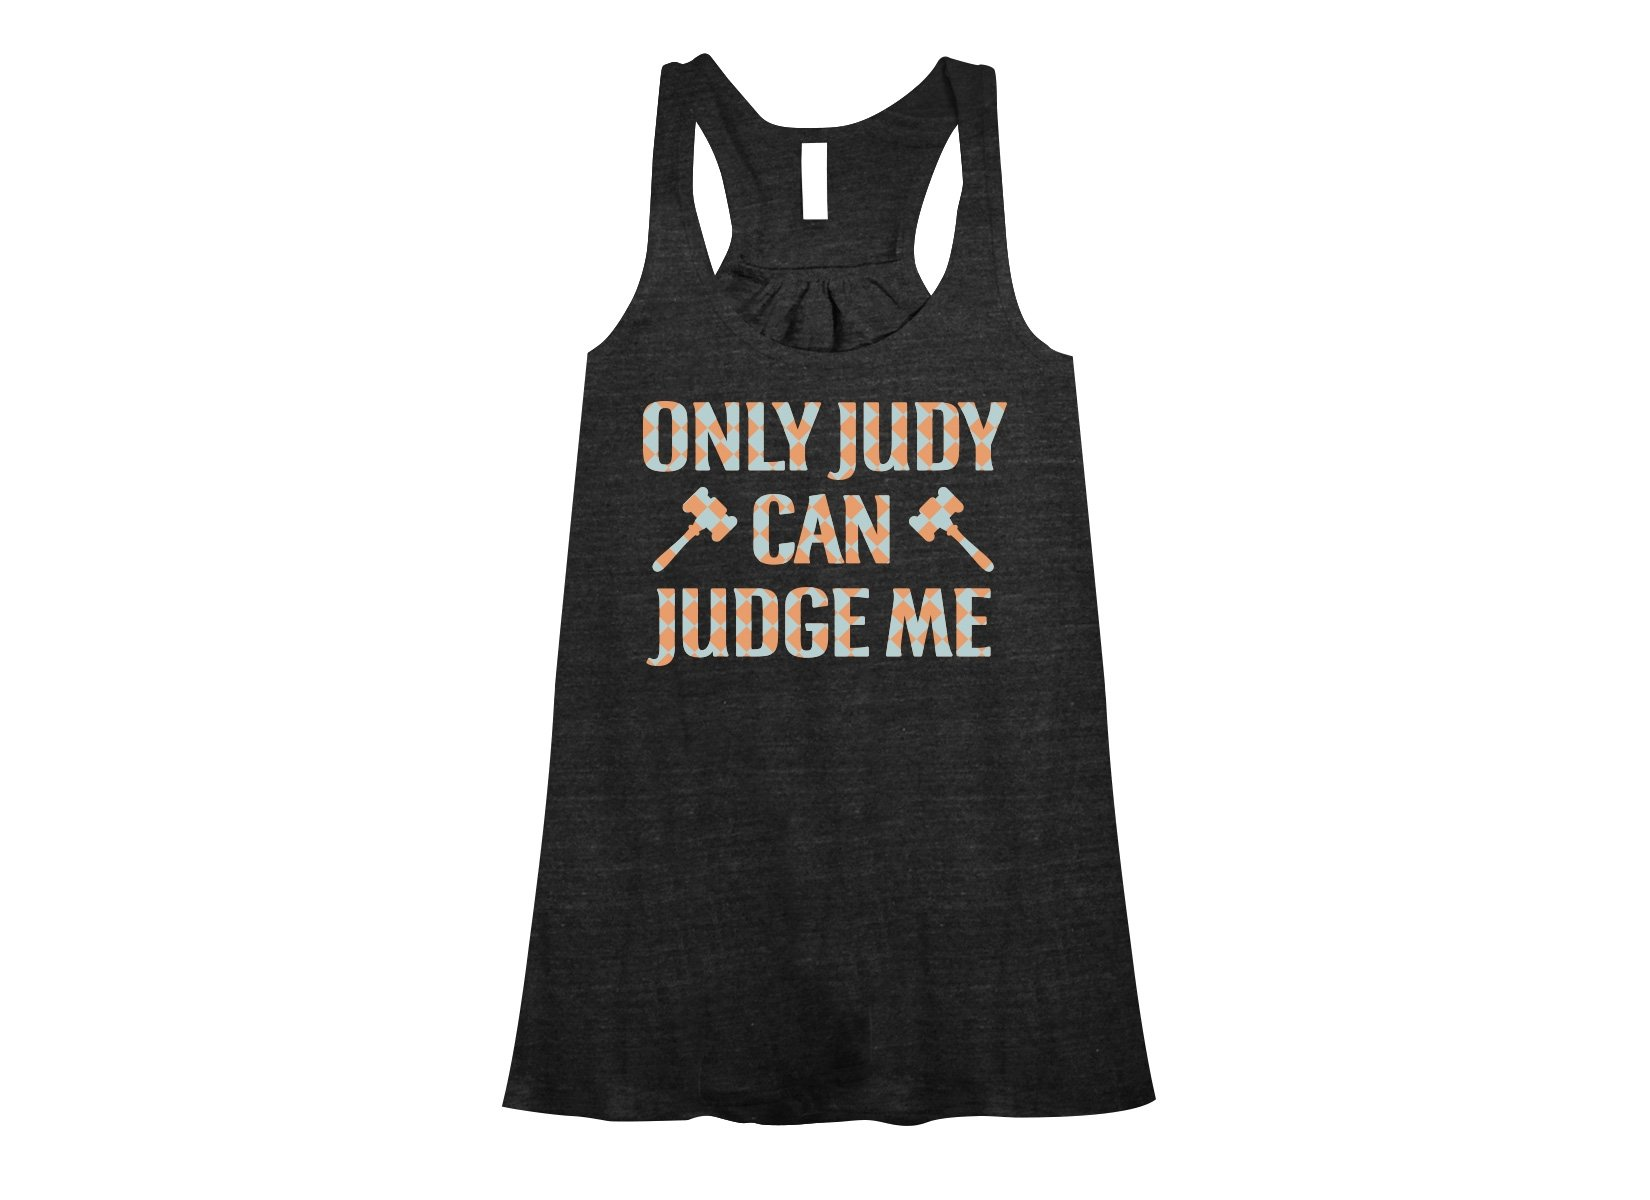 Only Judy Can Judge Me on Womens Tanks T-Shirt